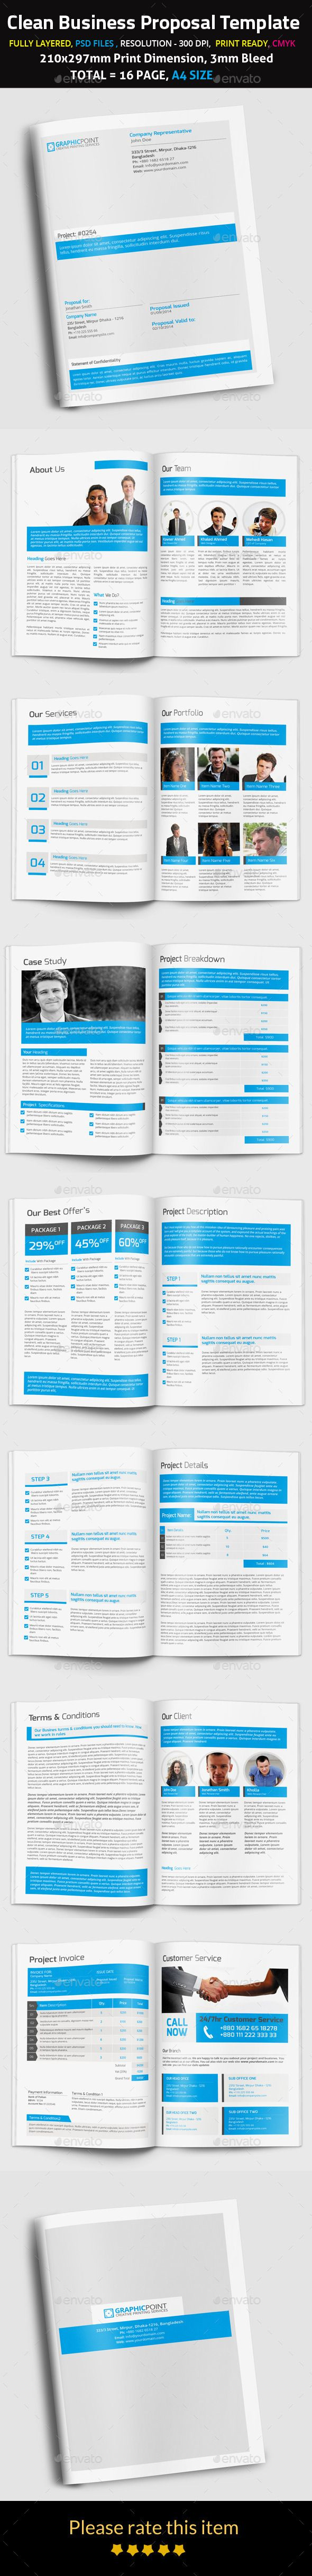 Commercial Proposal Format New 504 Best Business Proposal Images On Pinterest  Proposal Templates .